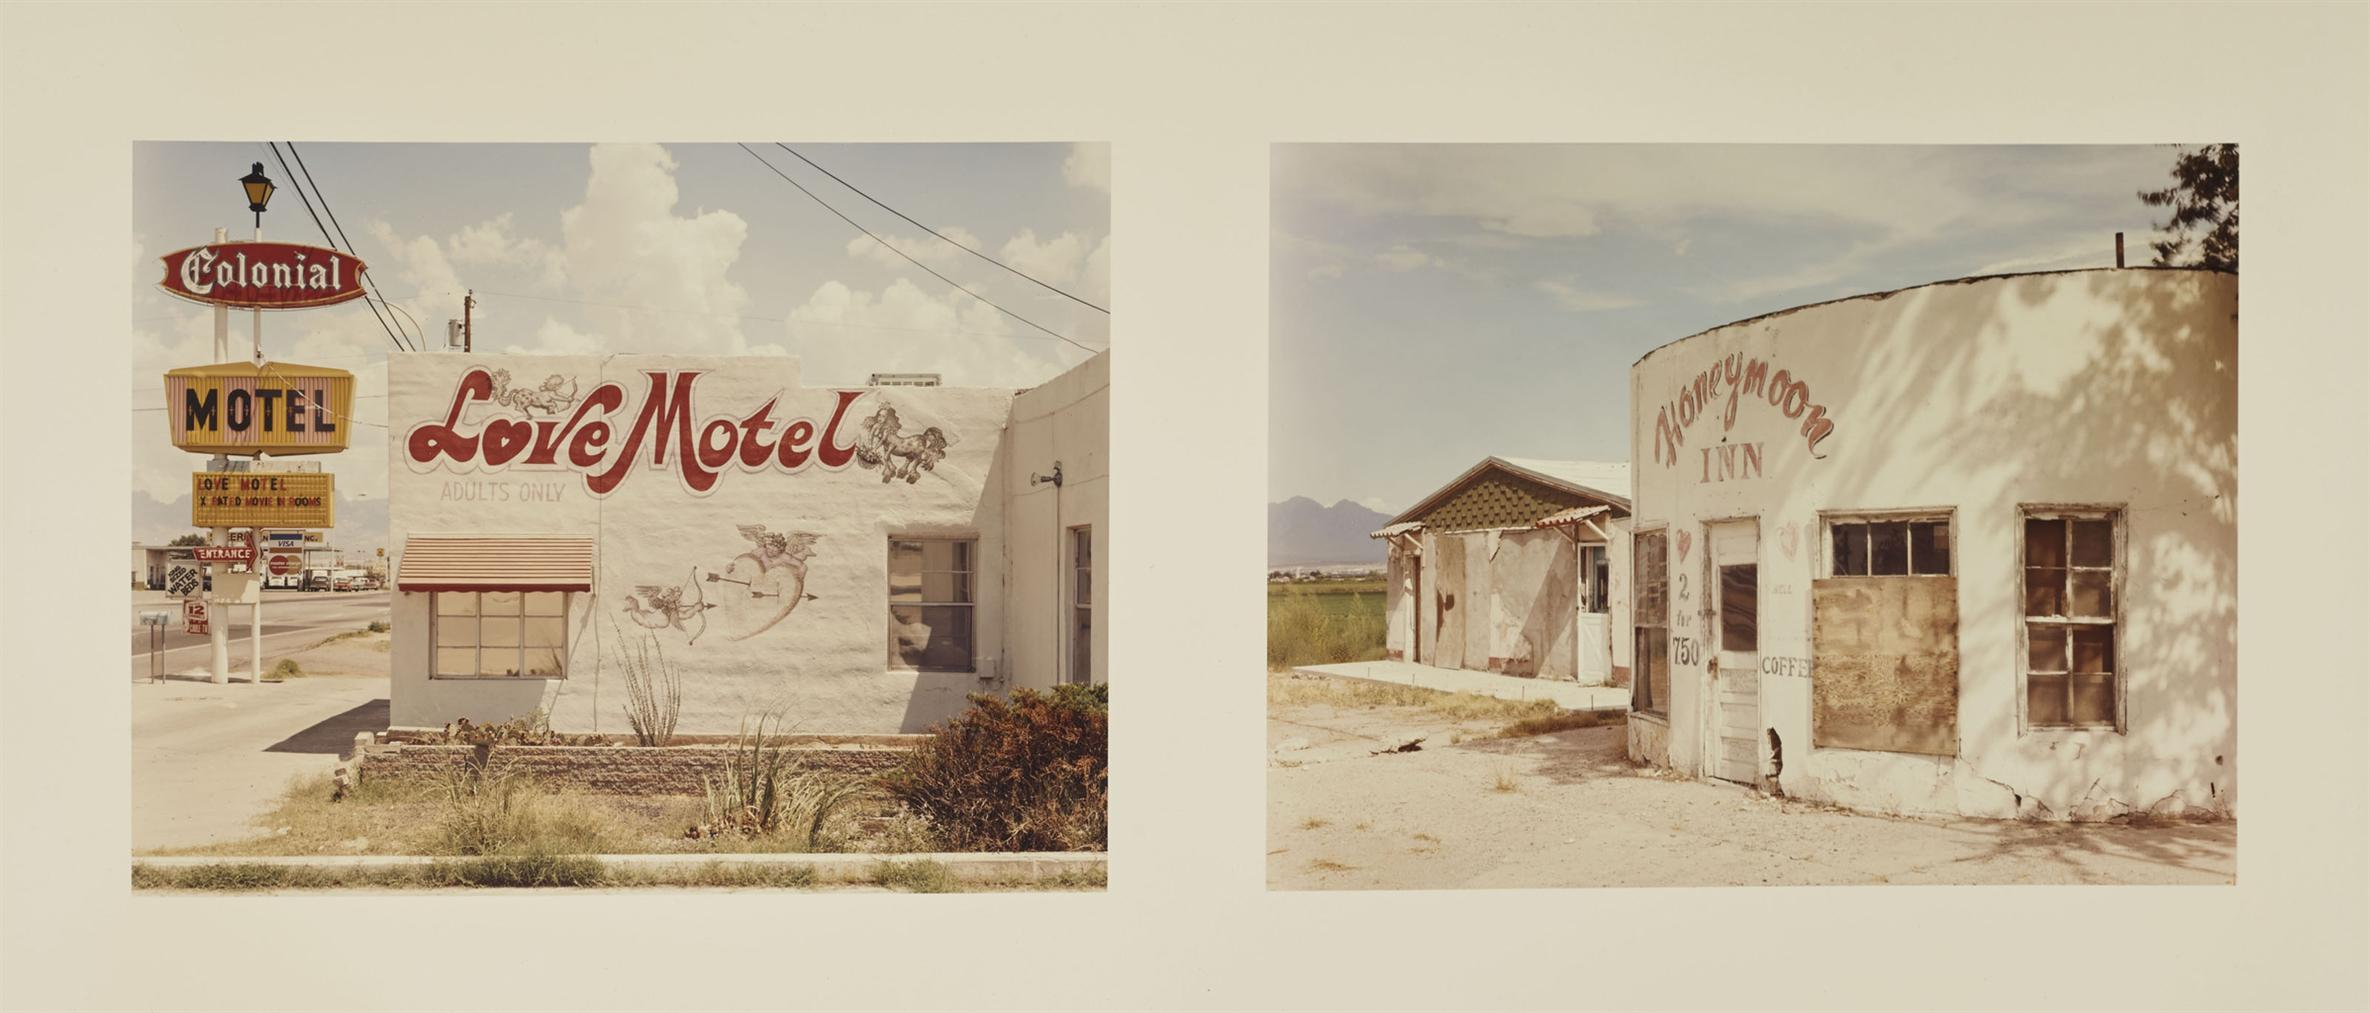 Joel Sternfeld-Two Motels In Las Cruces, New Mexico, Aout 1986-1986